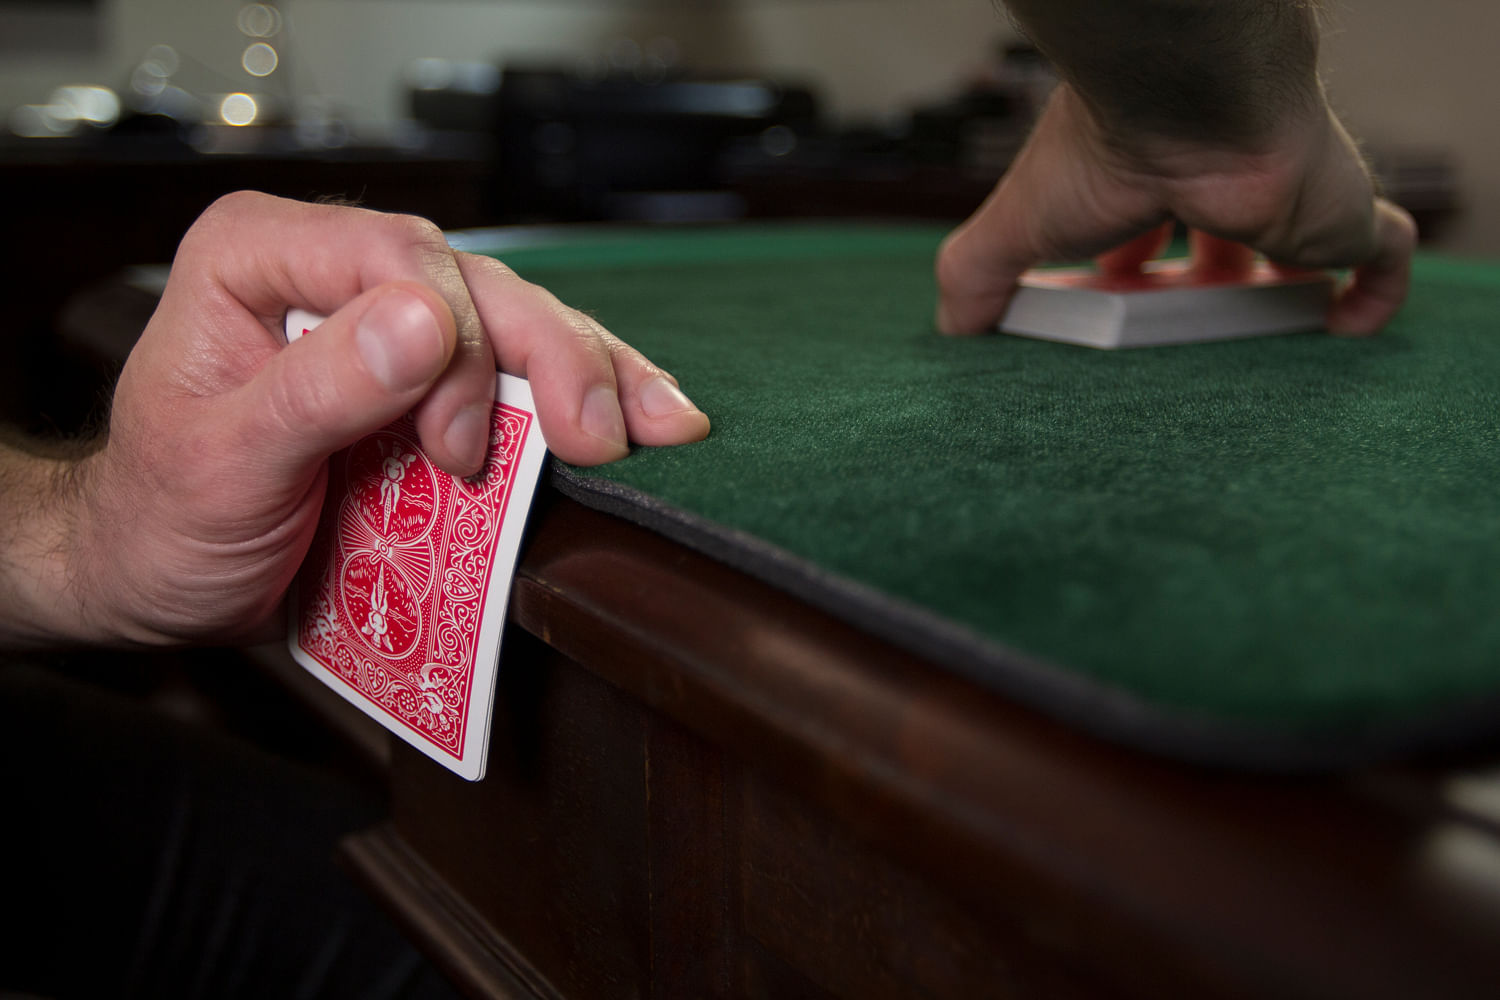 Holding out or mucking a card when cheating at a poker game